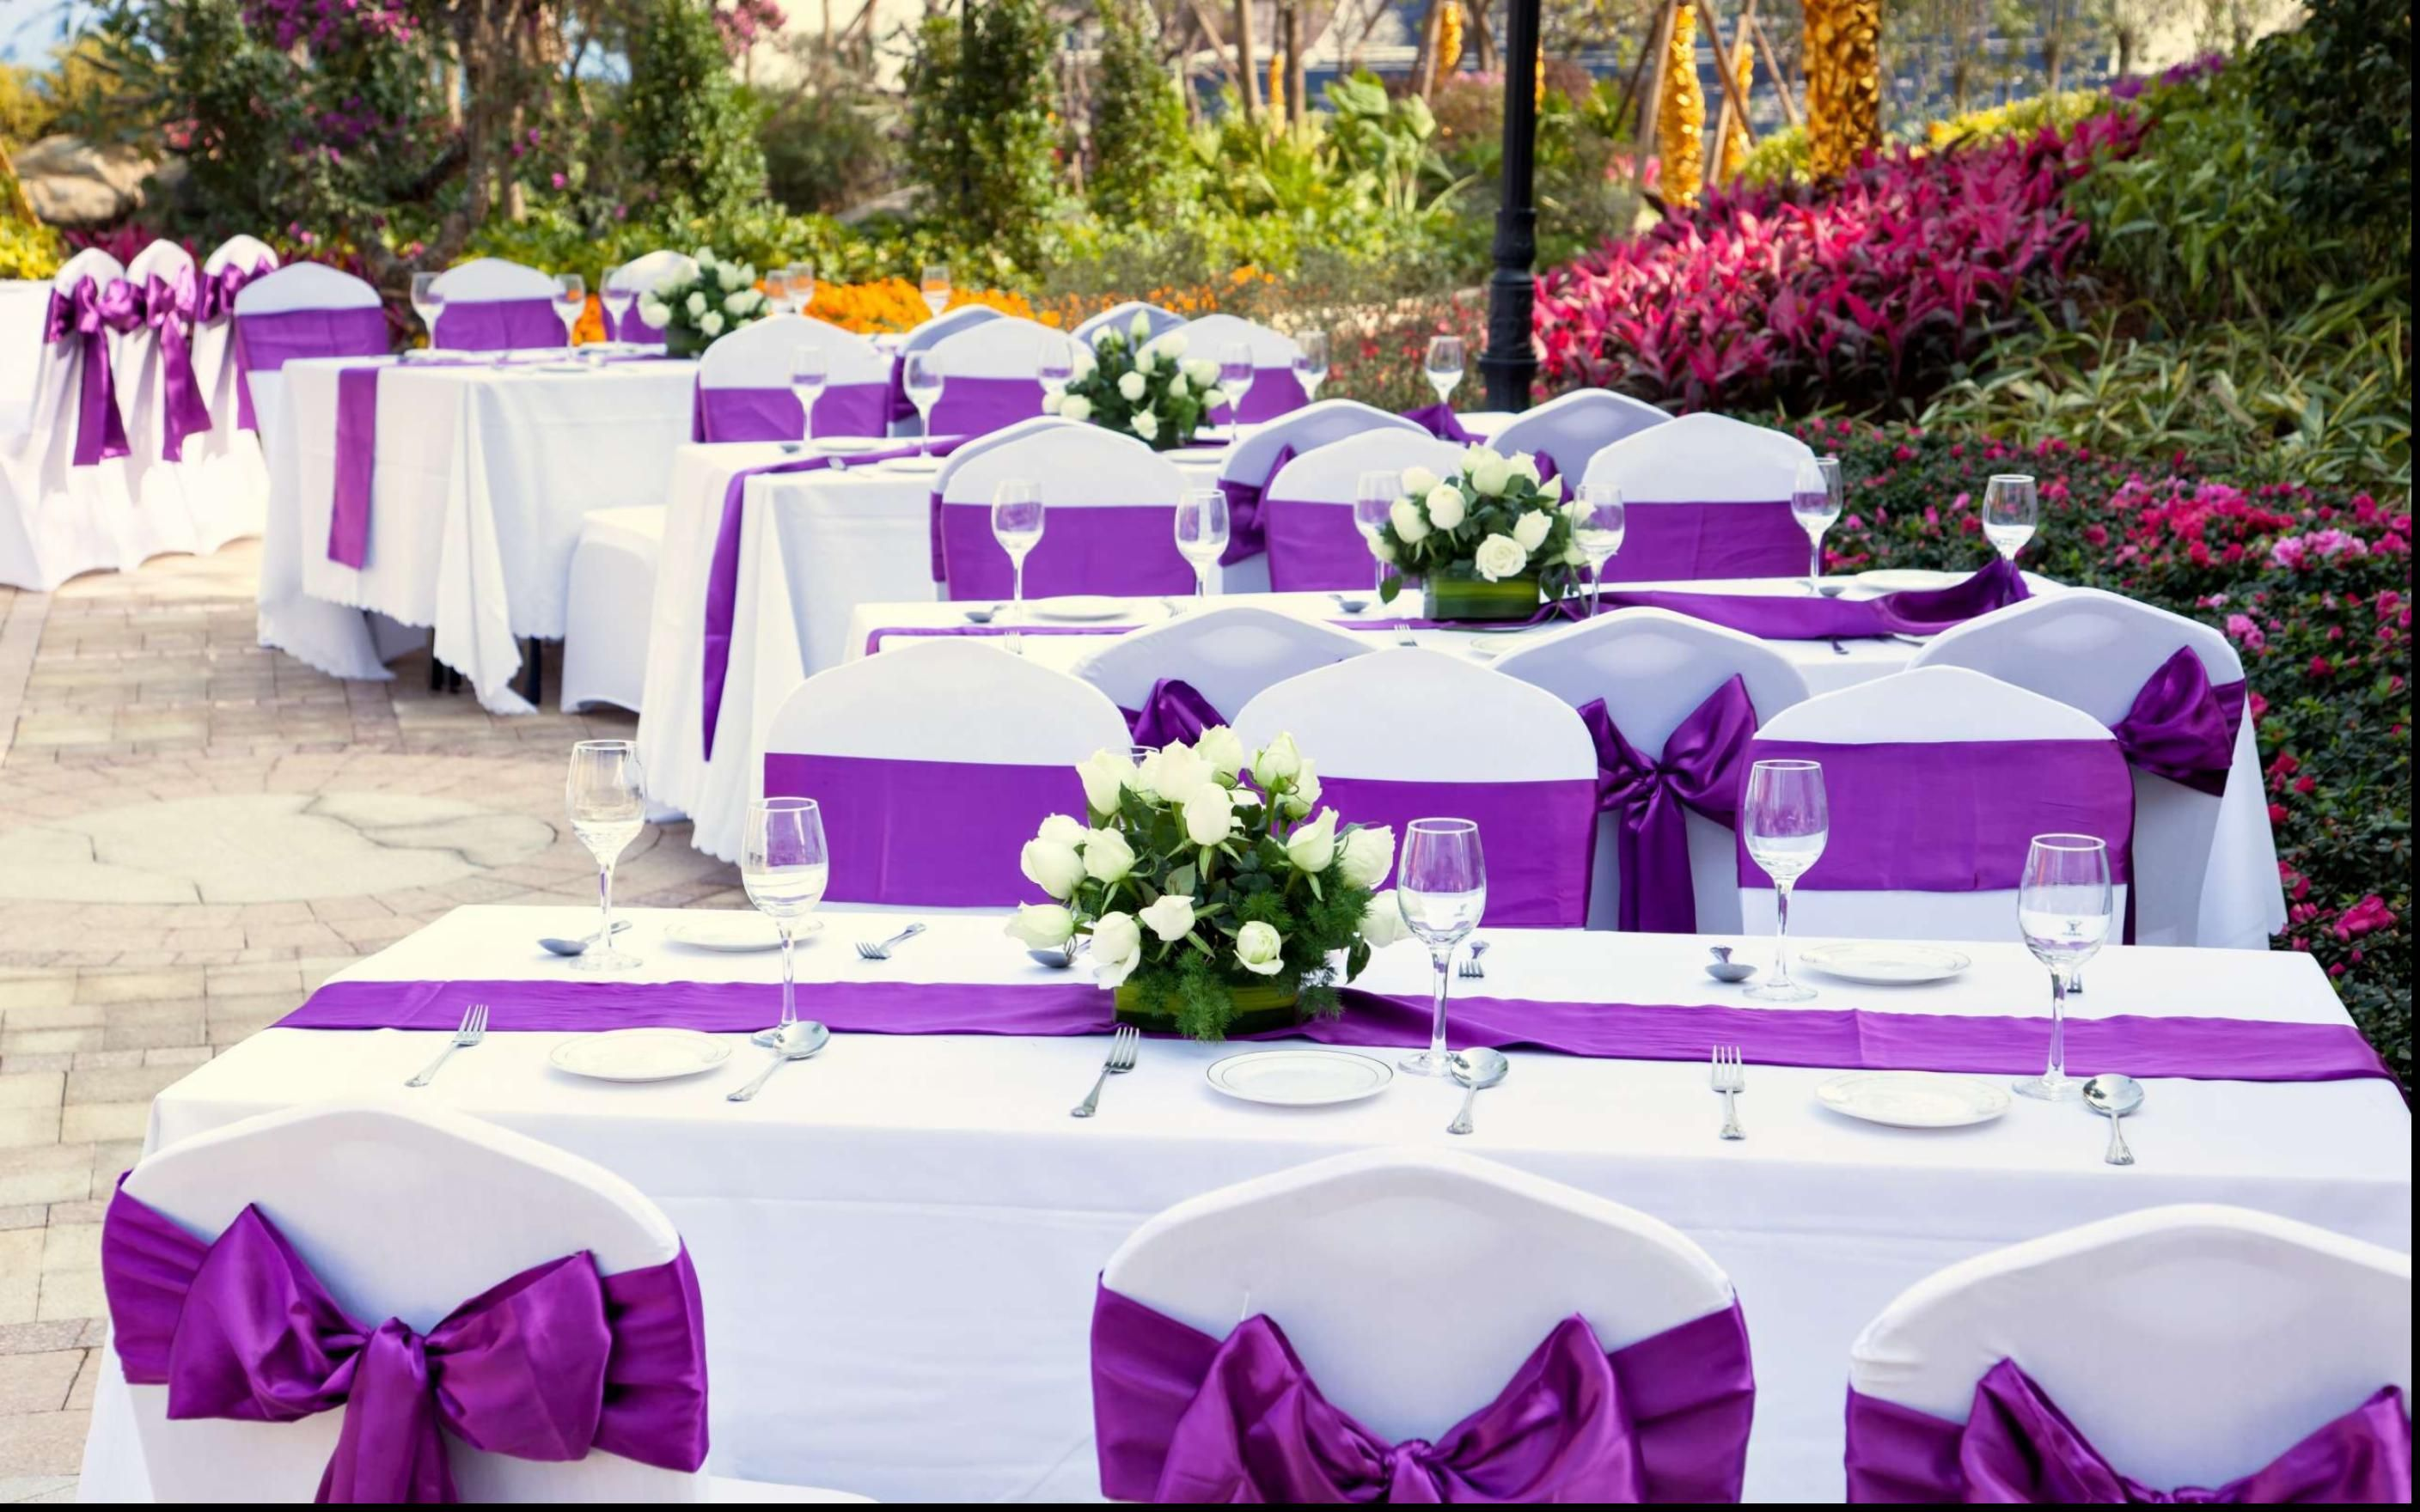 the decorations complete to bridal added this decor wedding theme couple a purple pin